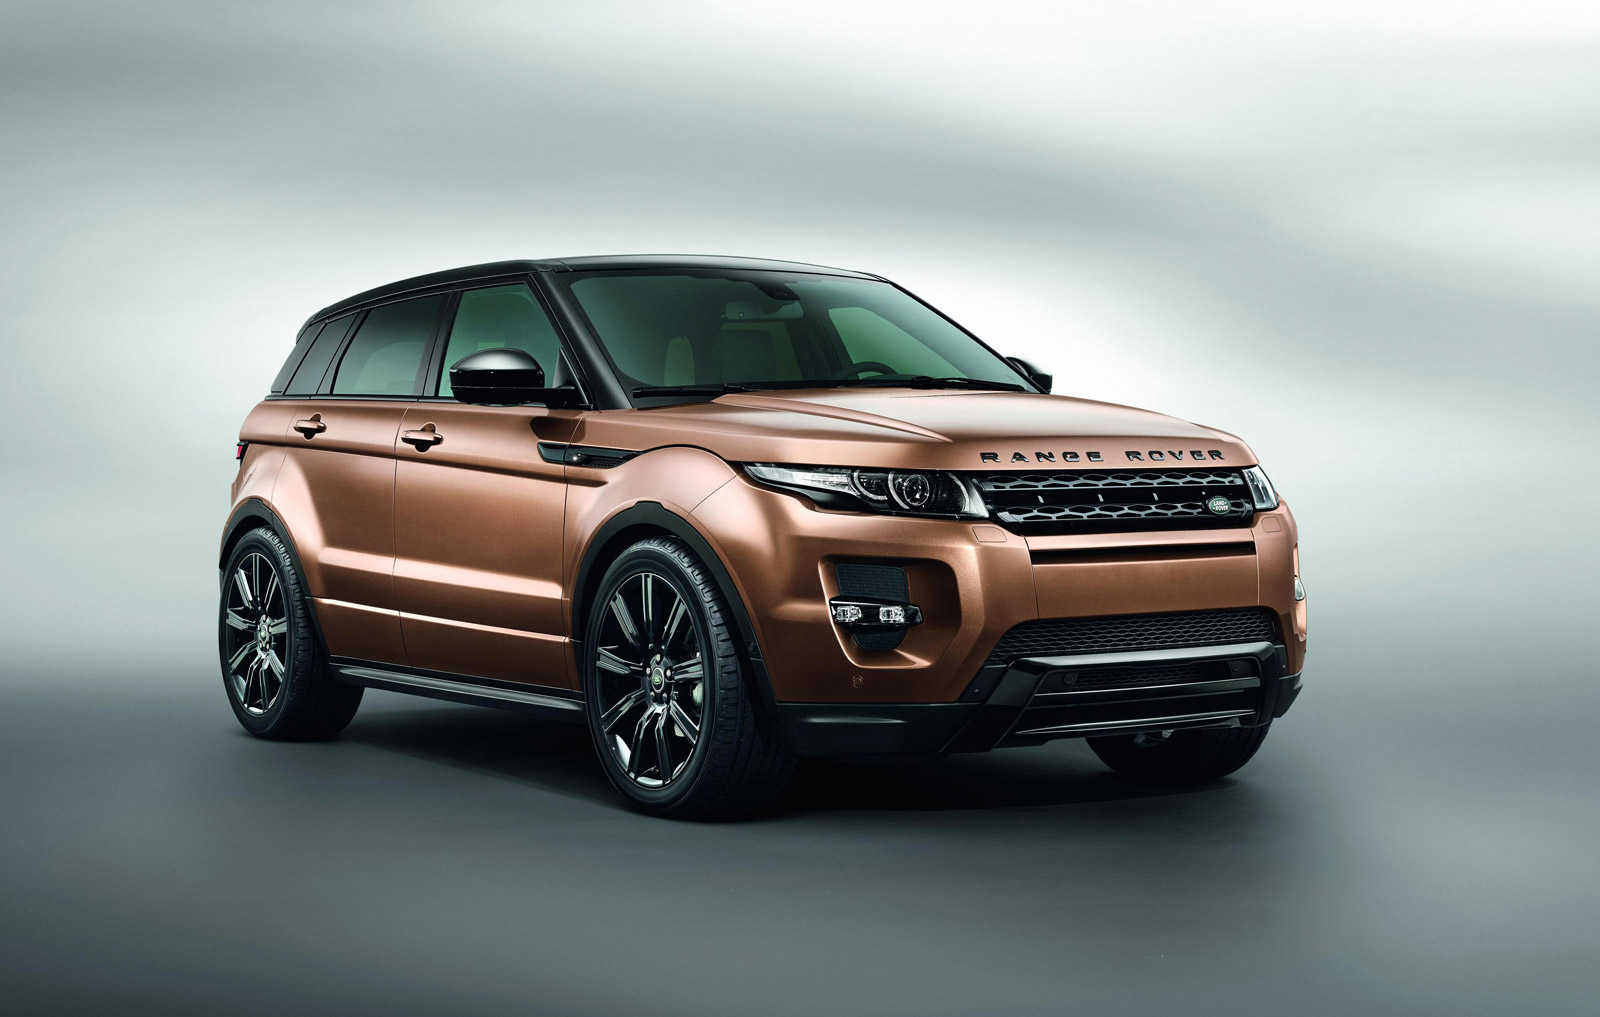 land rover range rover evoque pictures #6